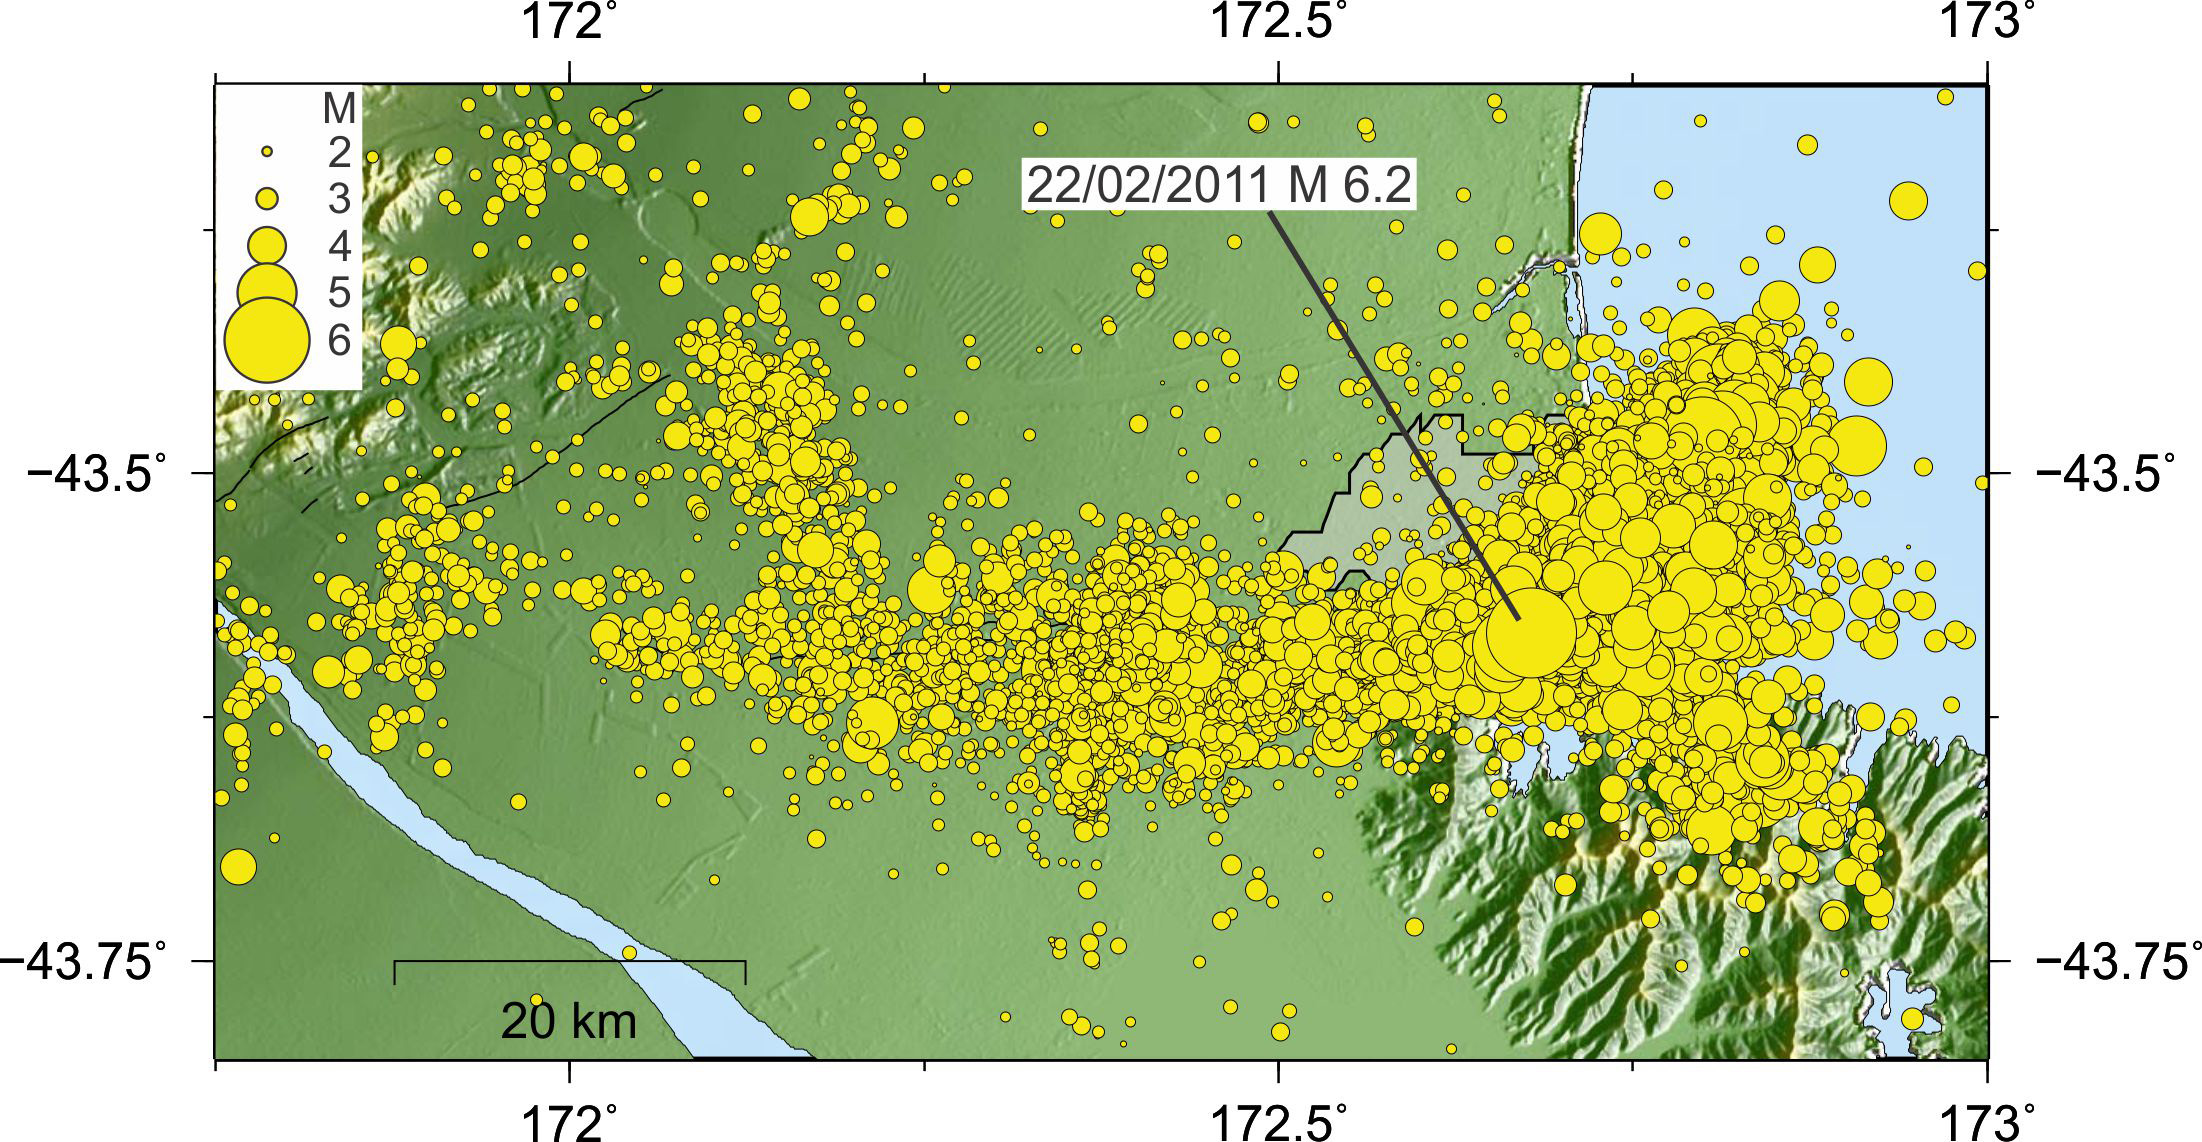 More than 10,000 quakes have rattled Christchurch since February 22, 2011.